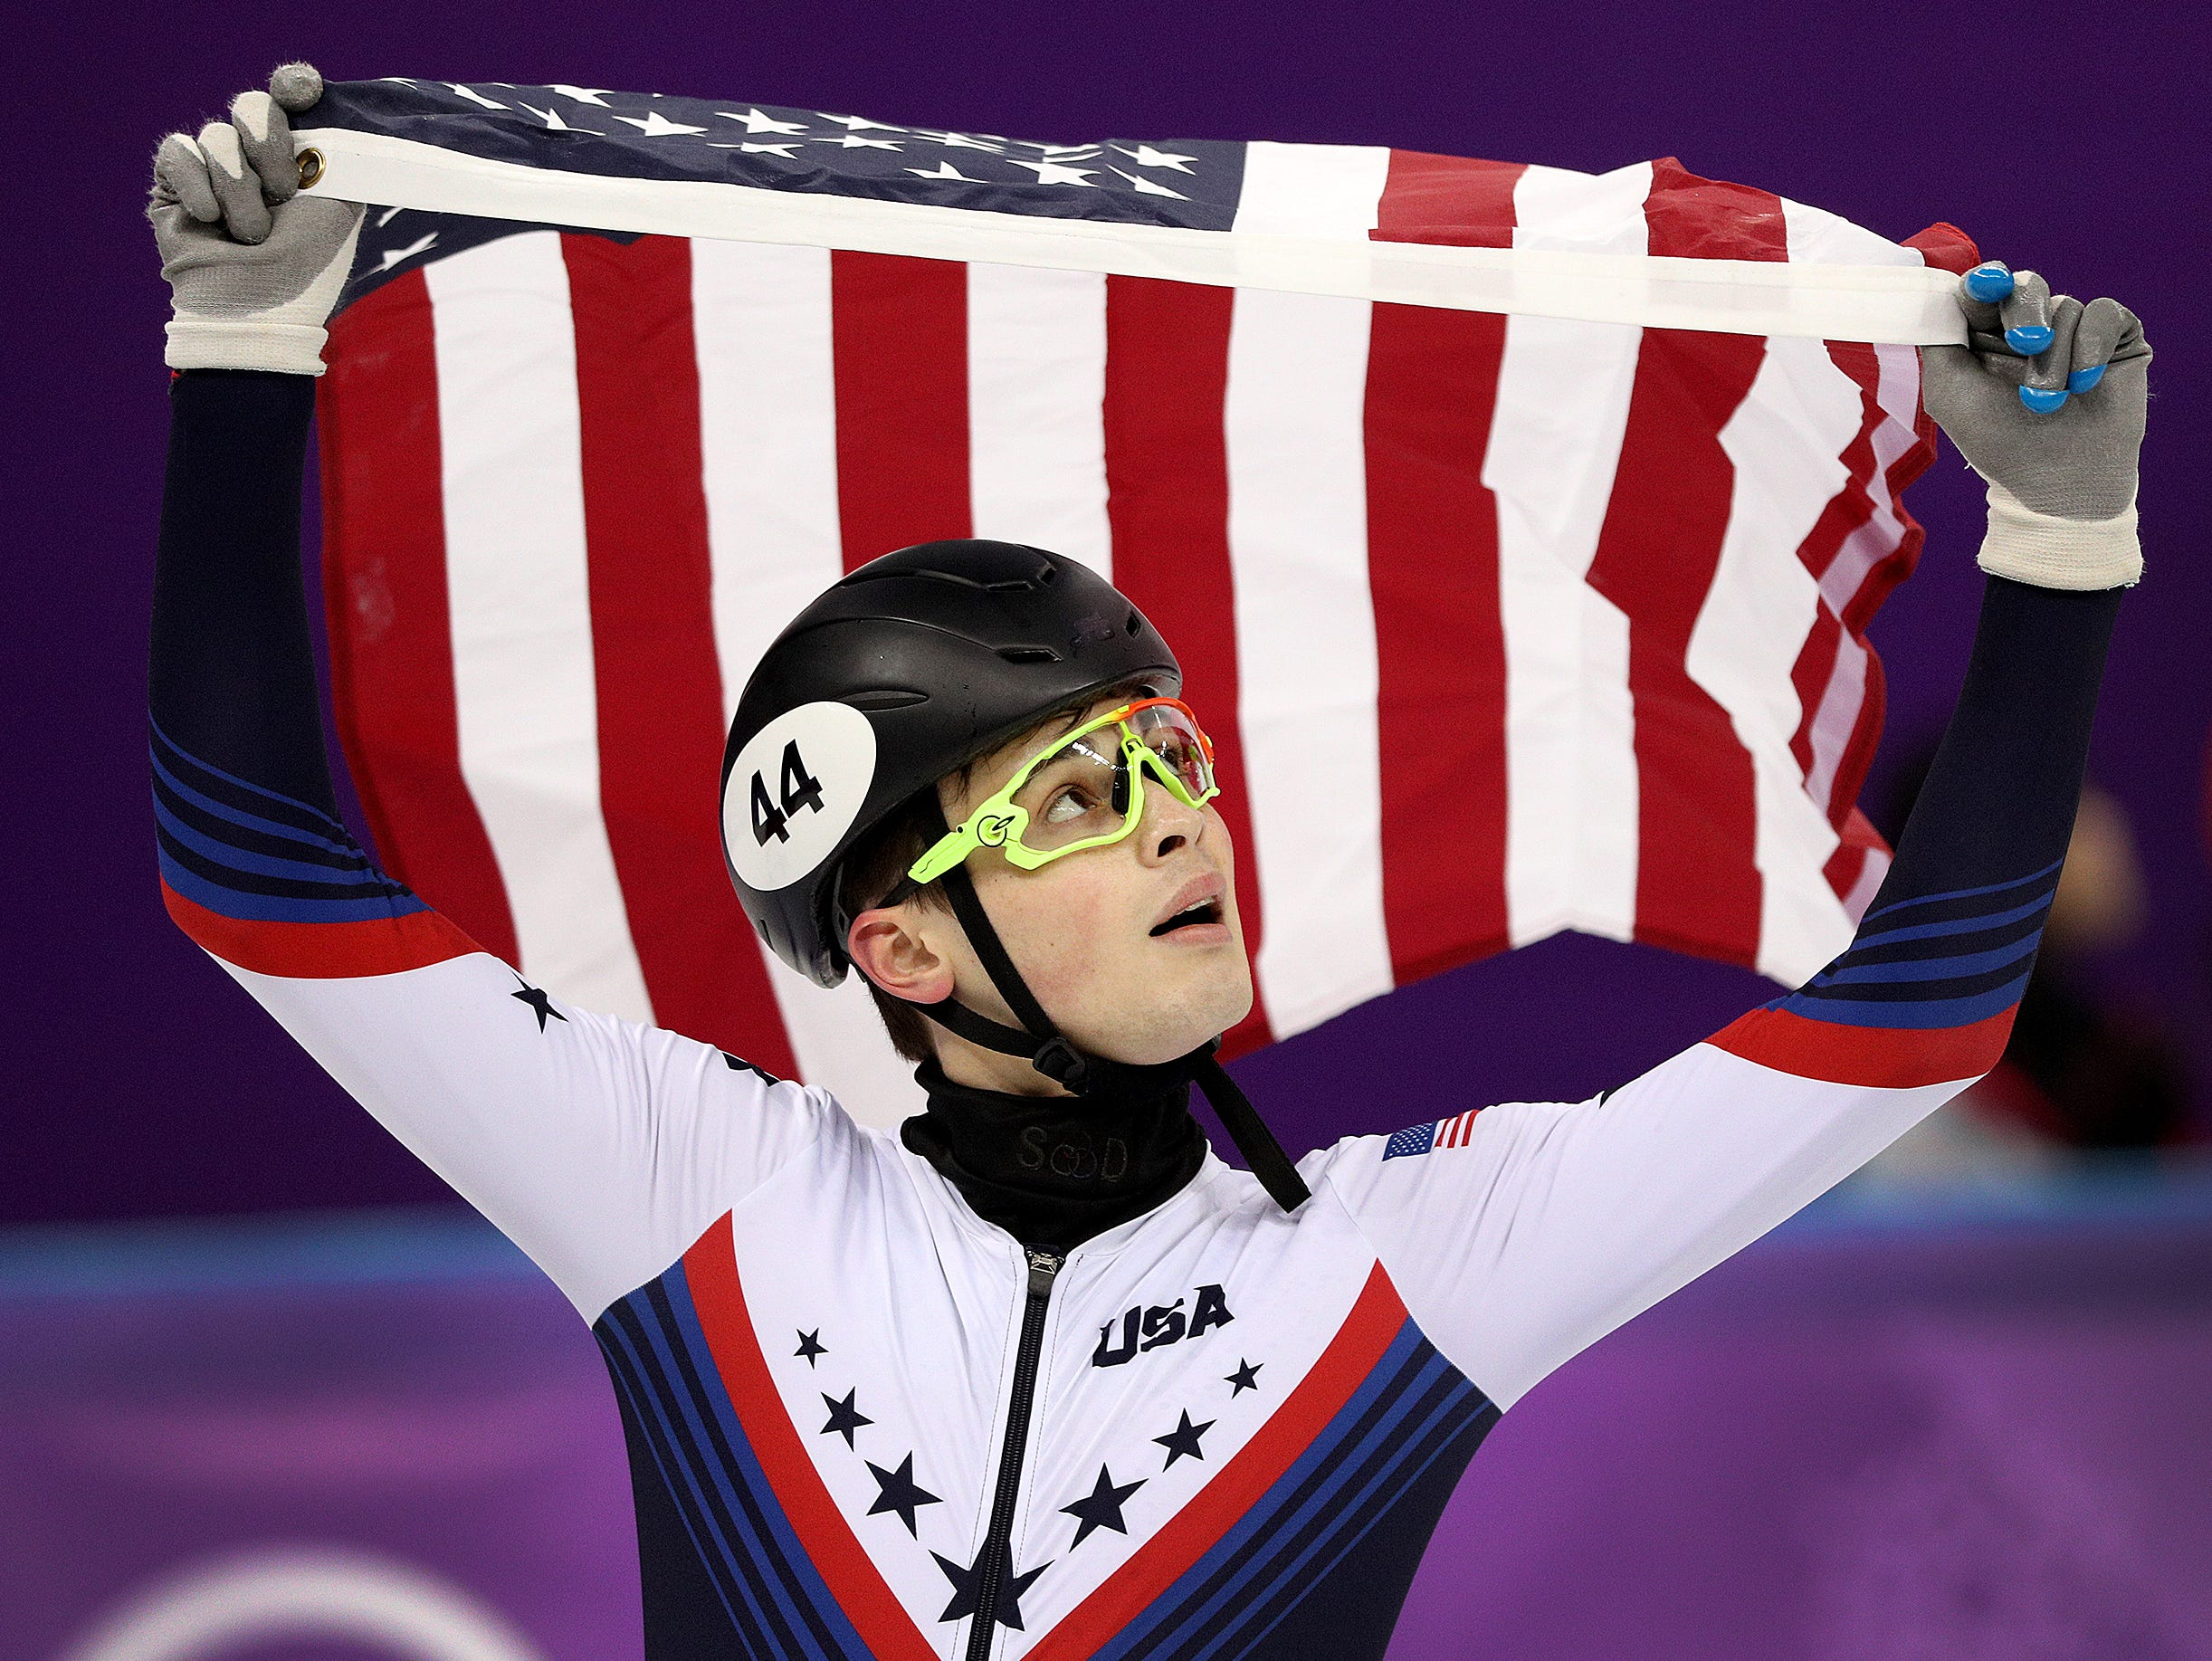 Feb 17, 2018; Pyeongchang, South Korea; John-Henry Krueger (USA) celebrates his silver medal performance in the Men's 1,000m short track speed skating during the Pyeongchang 2018 Olympic Winter Games at Gangneung Ice Arena. Mandatory Credit: Matt Kryger-USA TODAY Sports